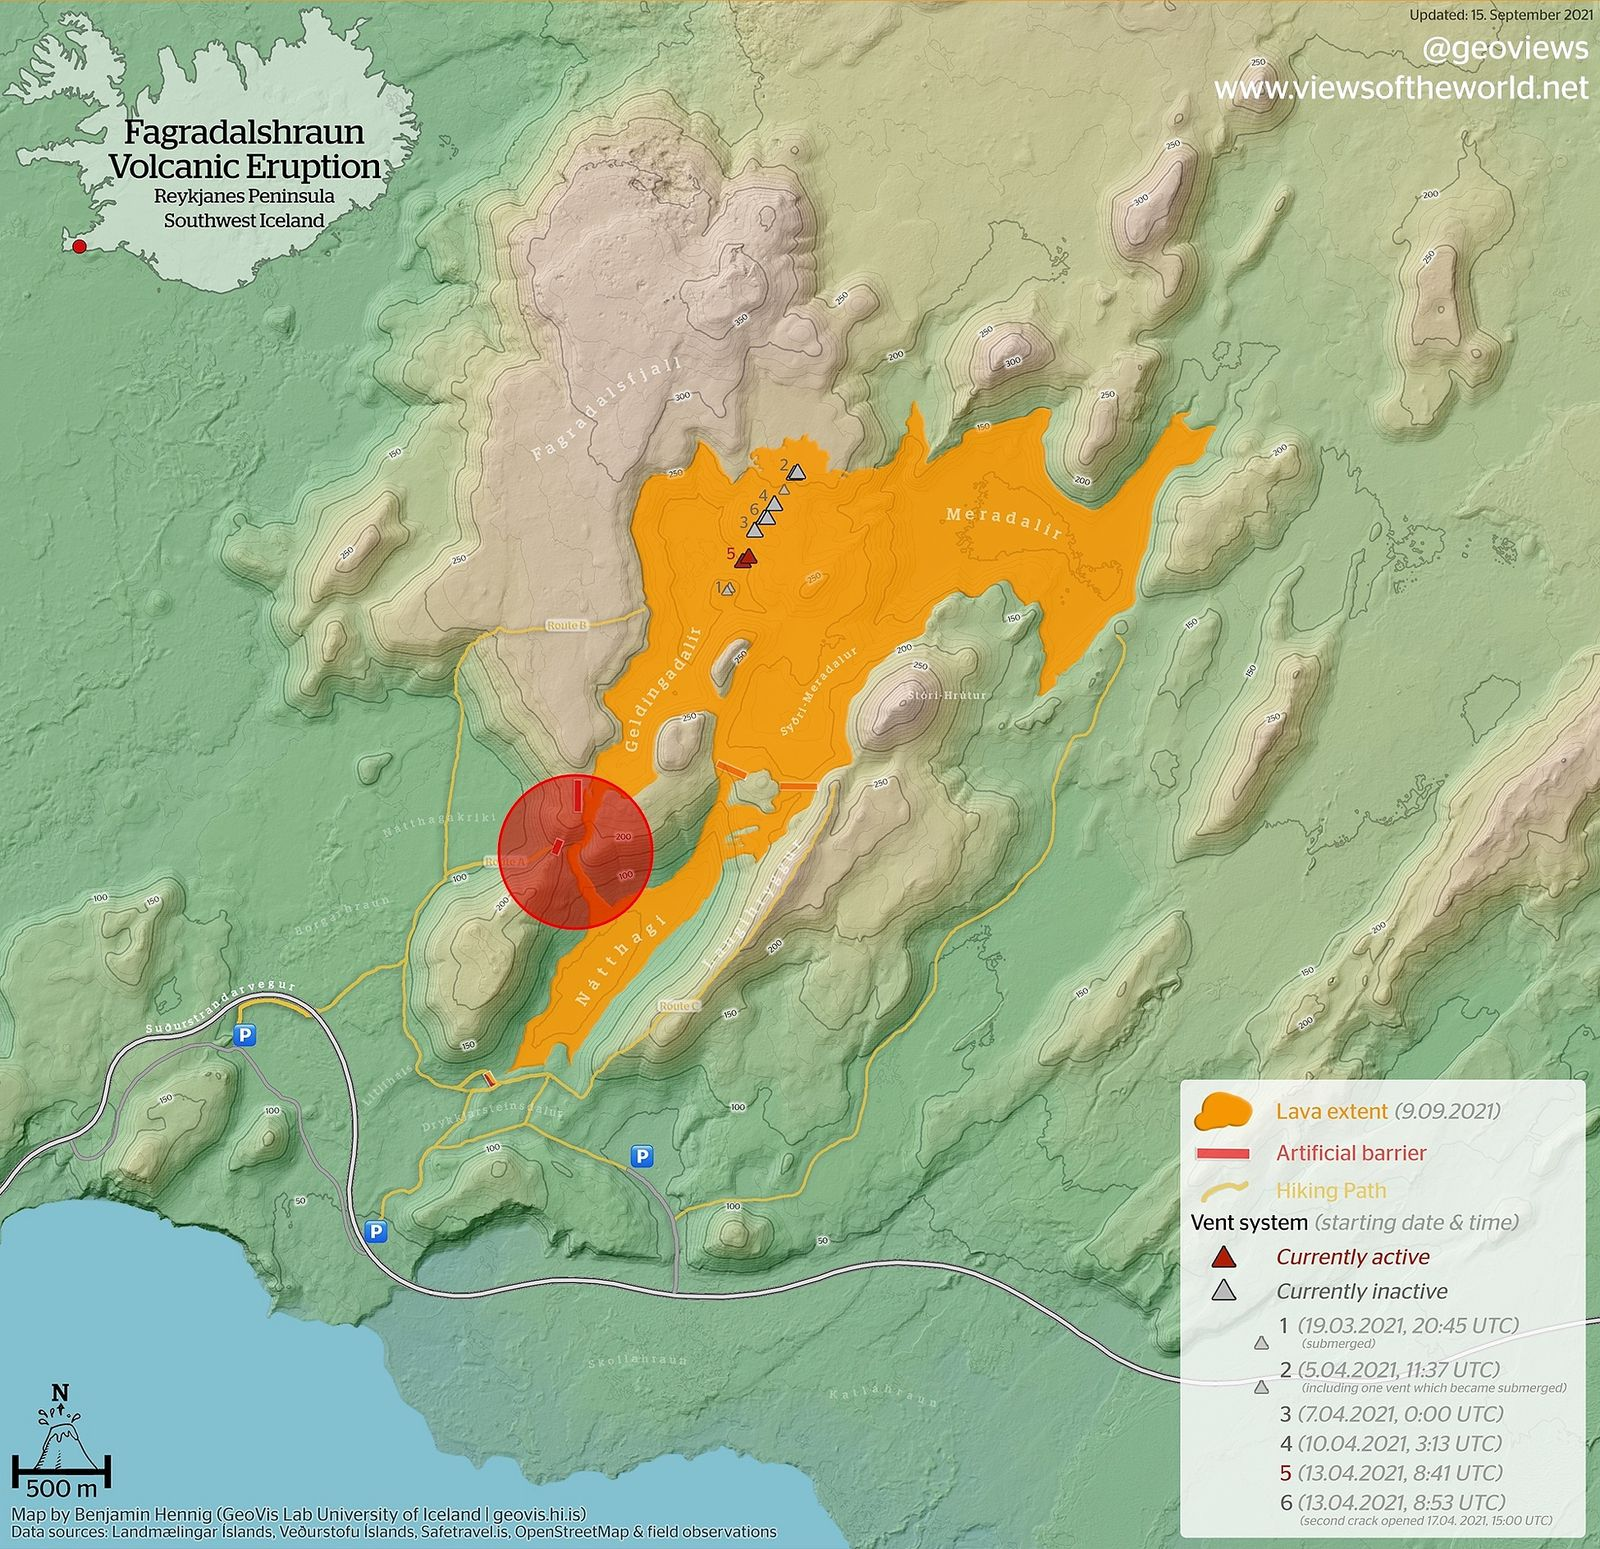 Lava flows can be observed along the slopes between the Geldingadalir and Nátthagi valleys (see red circle on the map newly published on September 15, 2021). - Doc. Benjamin Hennig 09.15.2021